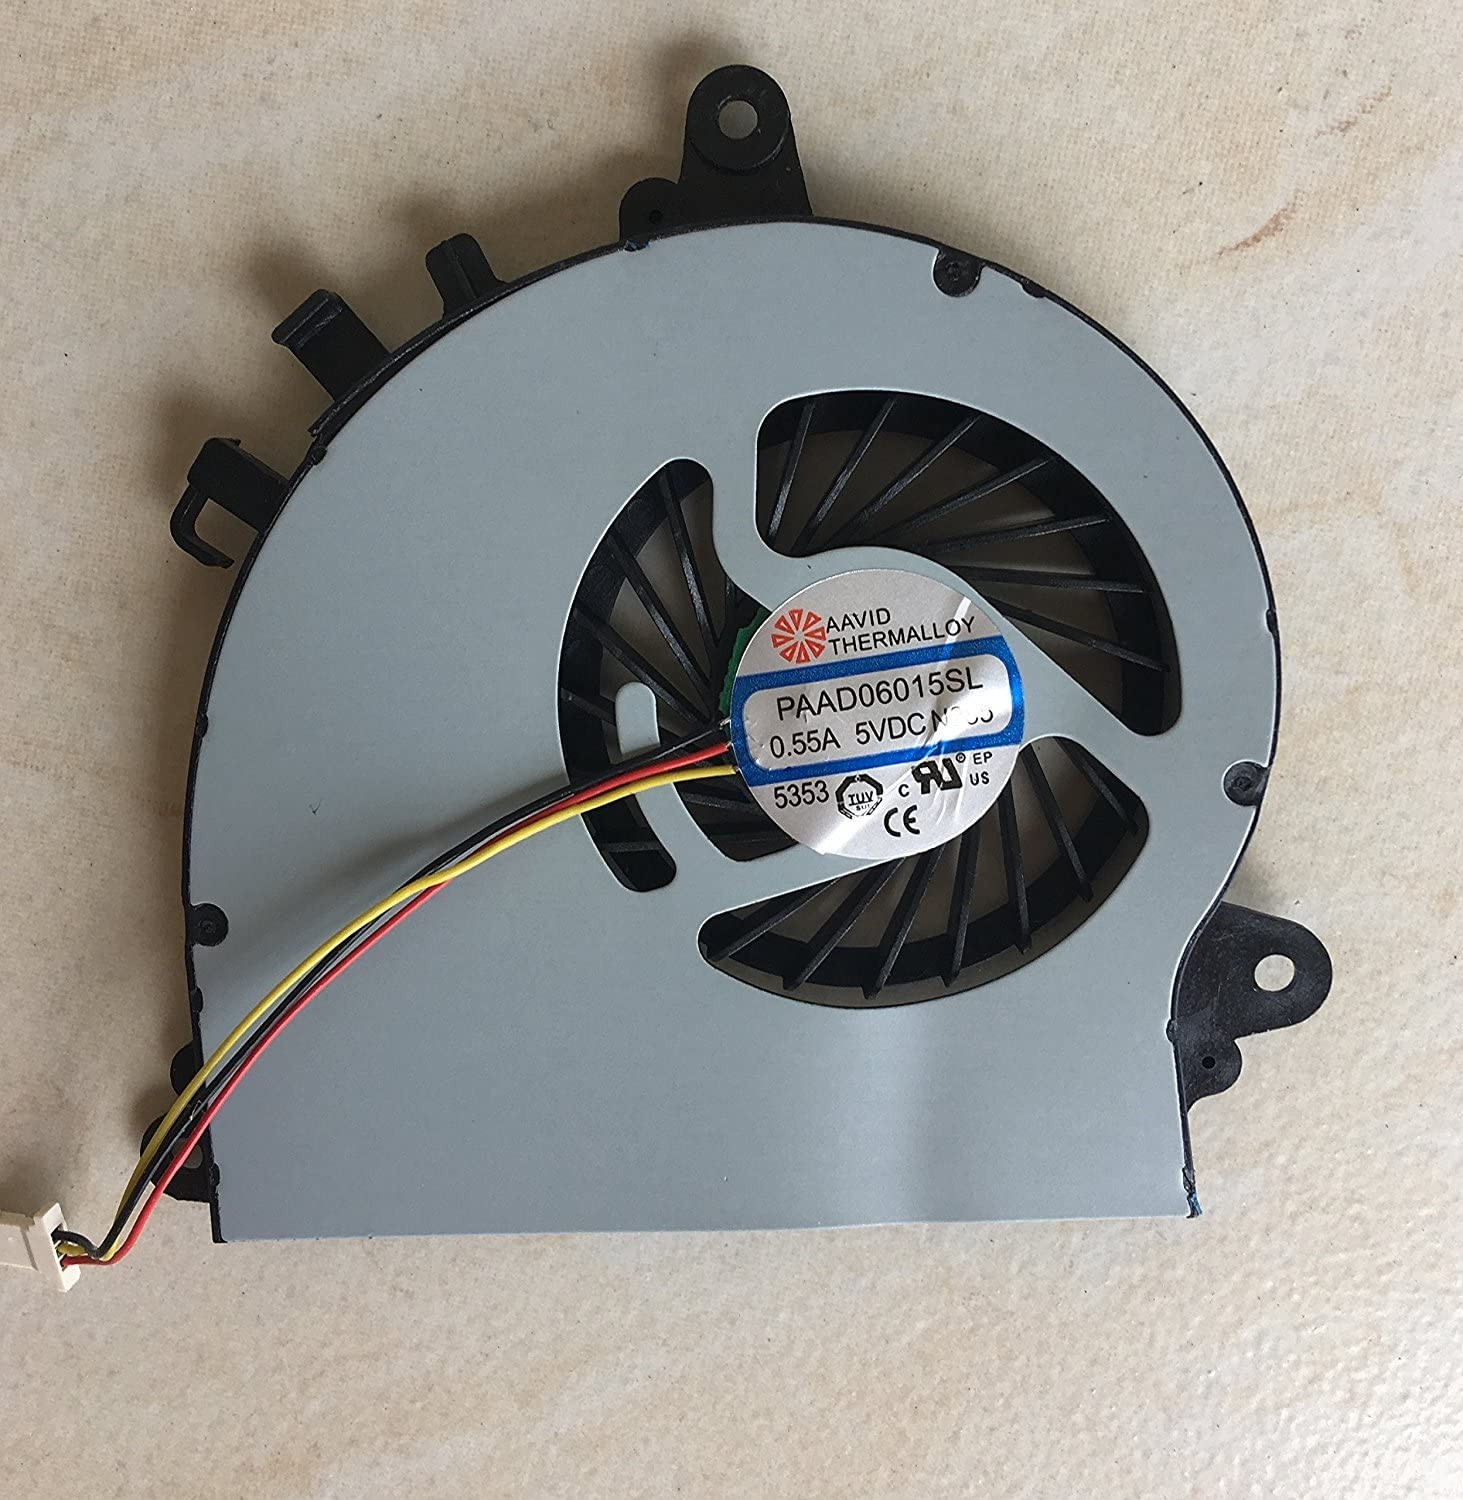 iiFix Brand New Laptop GPU Graphics Cards Cooling Cooler Fan For MSI GS70 GS72 GTX 765M AAVID PAAD06015SL 0.55A 5VDC N269 3 Pins